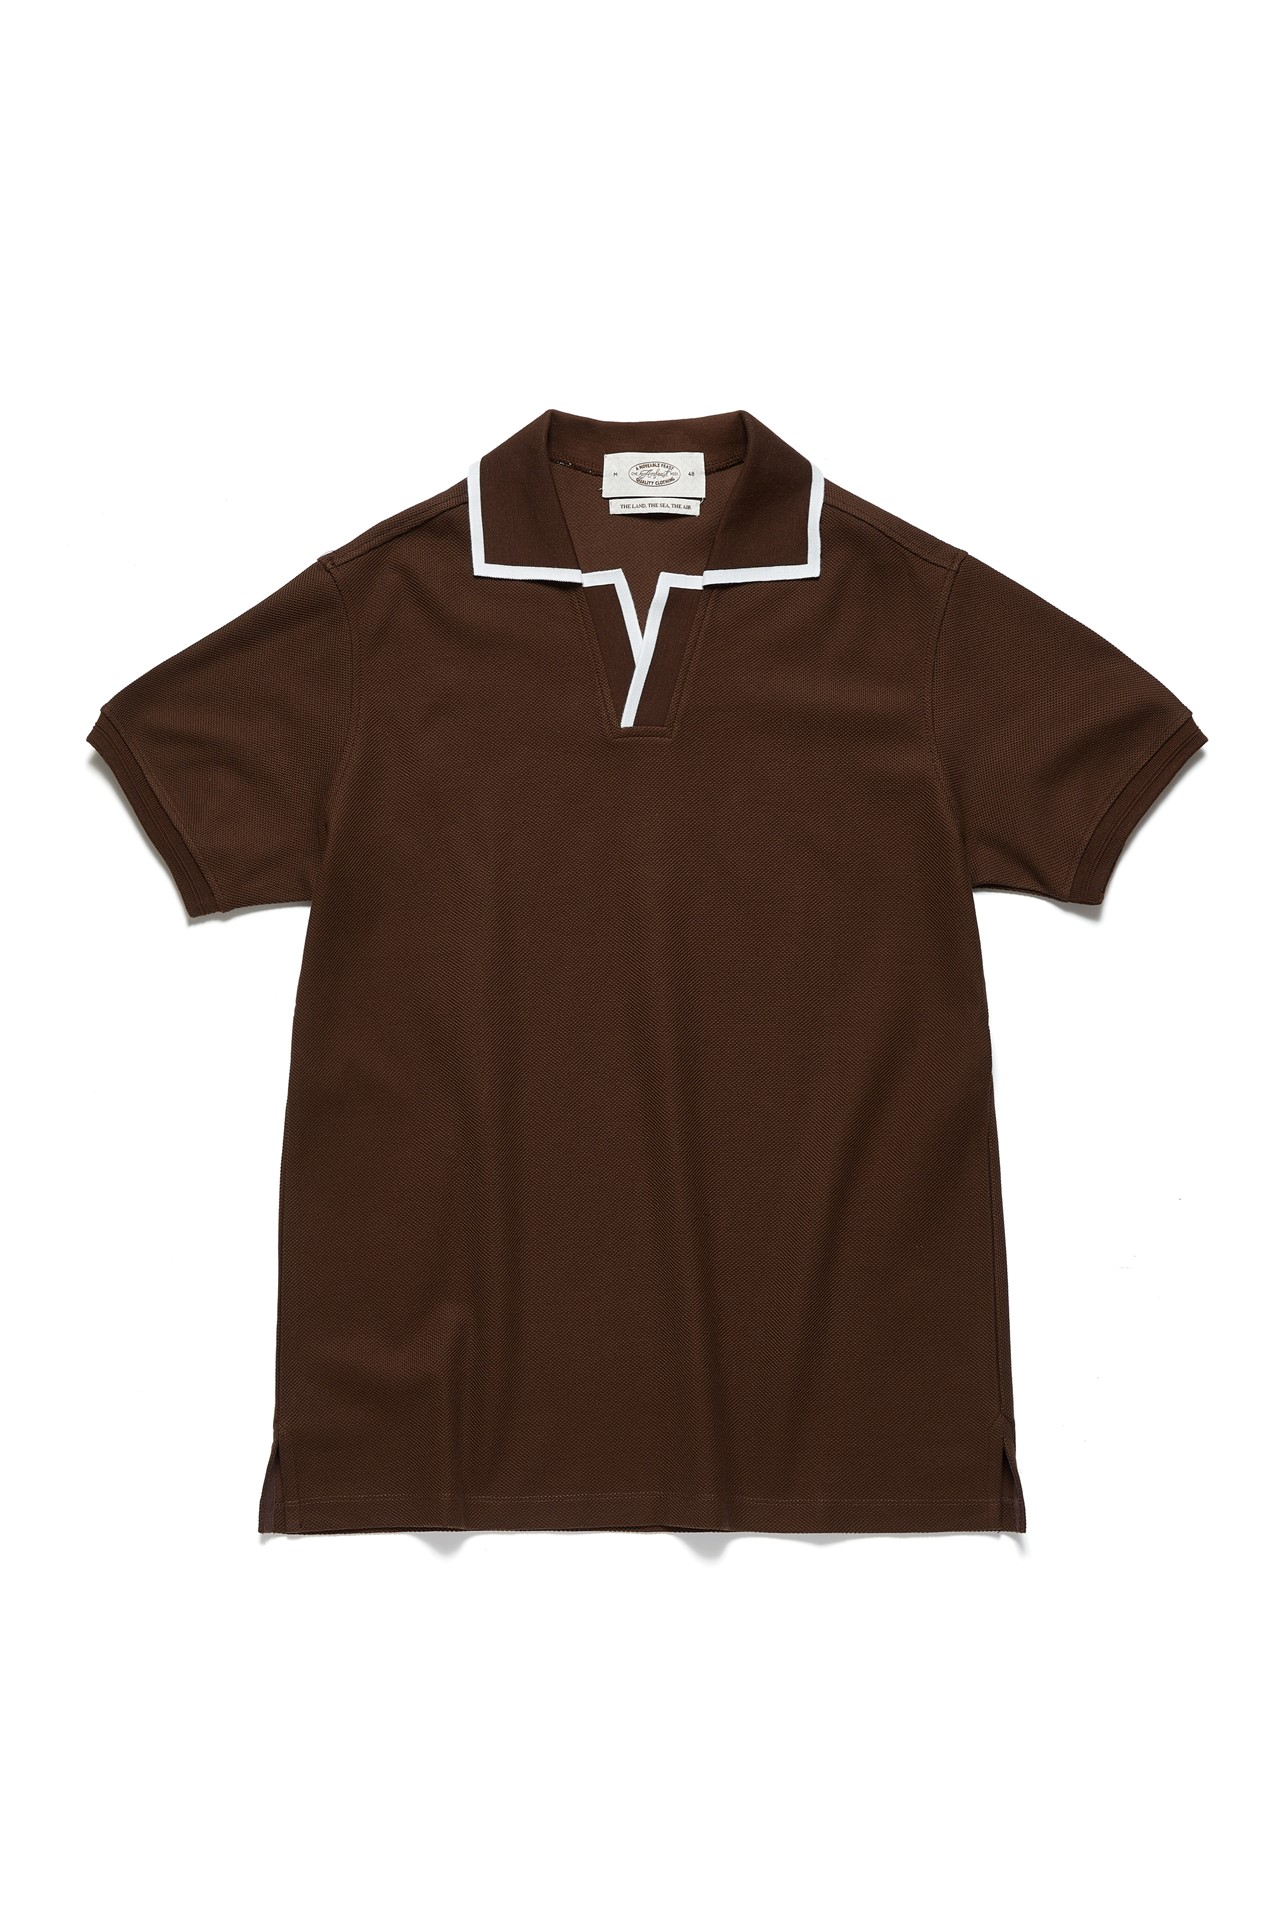 BROWN LINE POLO SHIRTSAmfeast(암피스트)